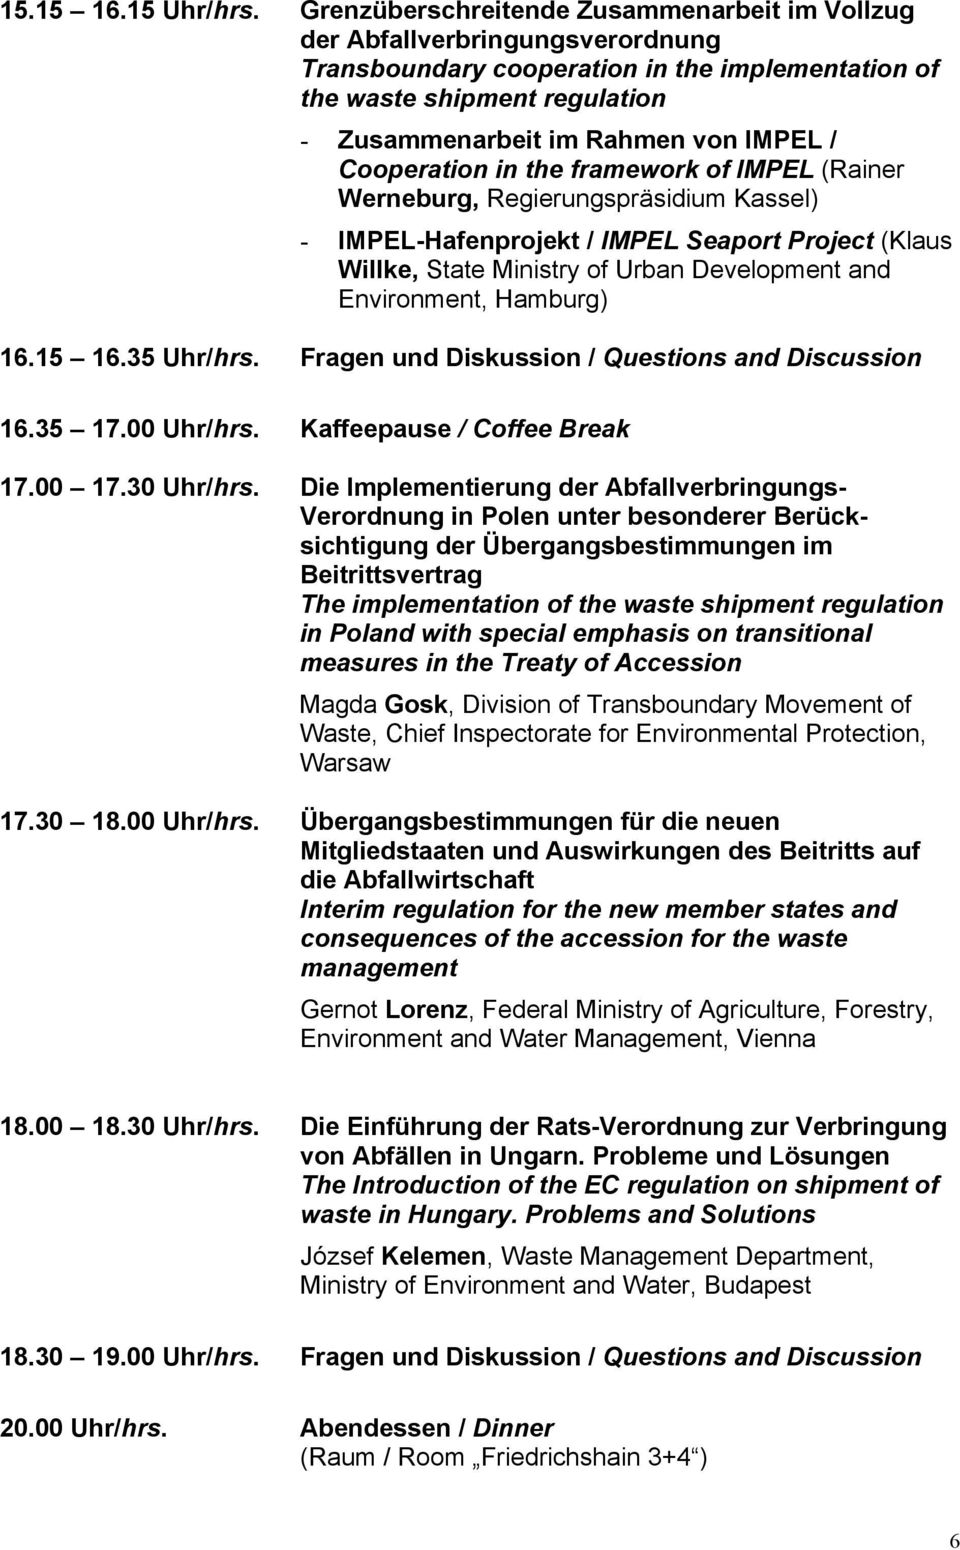 Cooperation in the framework of IMPEL (Rainer Werneburg, Regierungspräsidium Kassel) - IMPEL-Hafenprojekt / IMPEL Seaport Project (Klaus Willke, State Ministry of Urban Development and Environment,